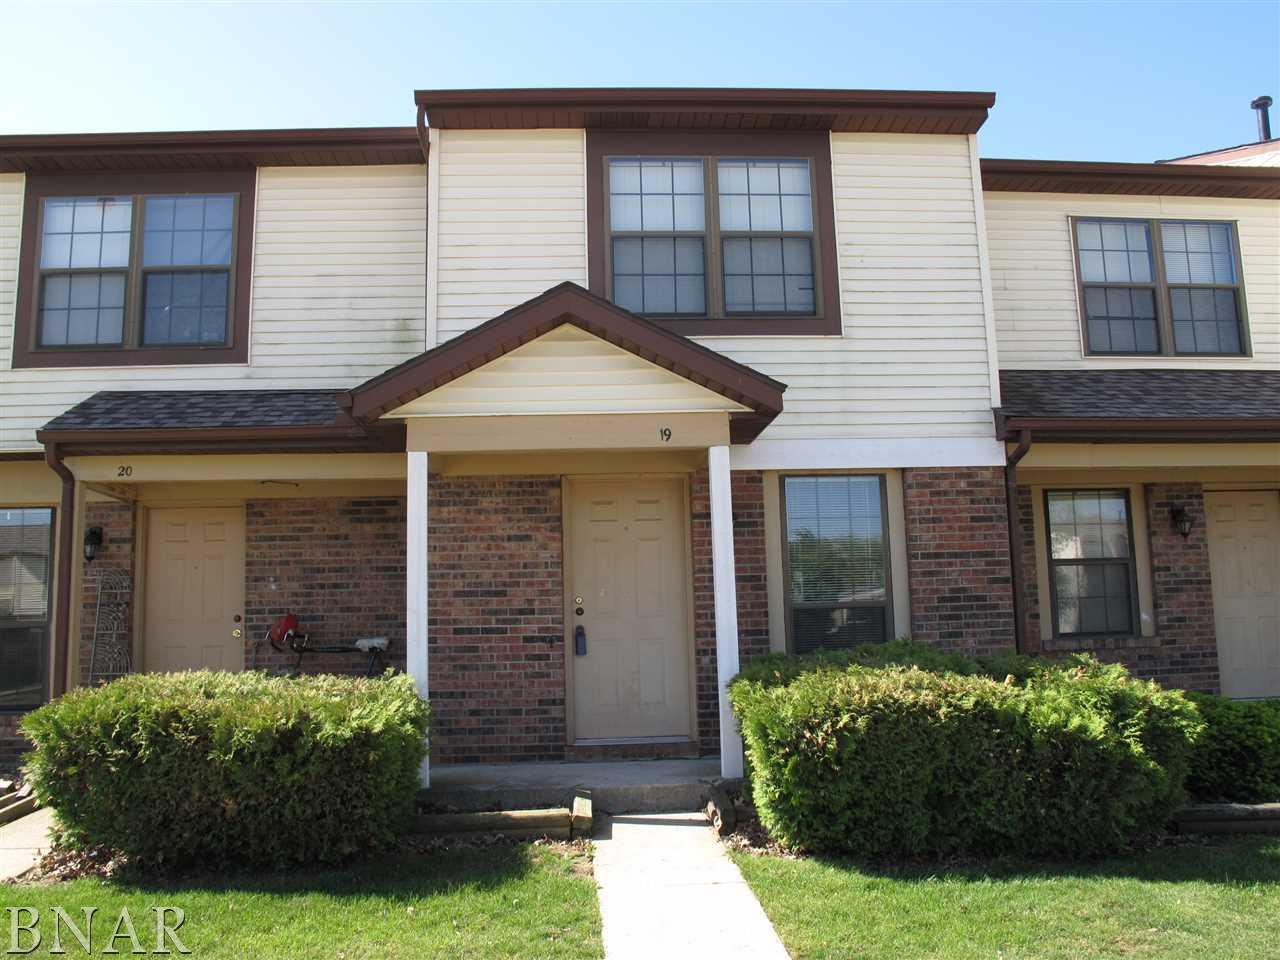 Photo of 700 N Adelaide 19  Normal  IL